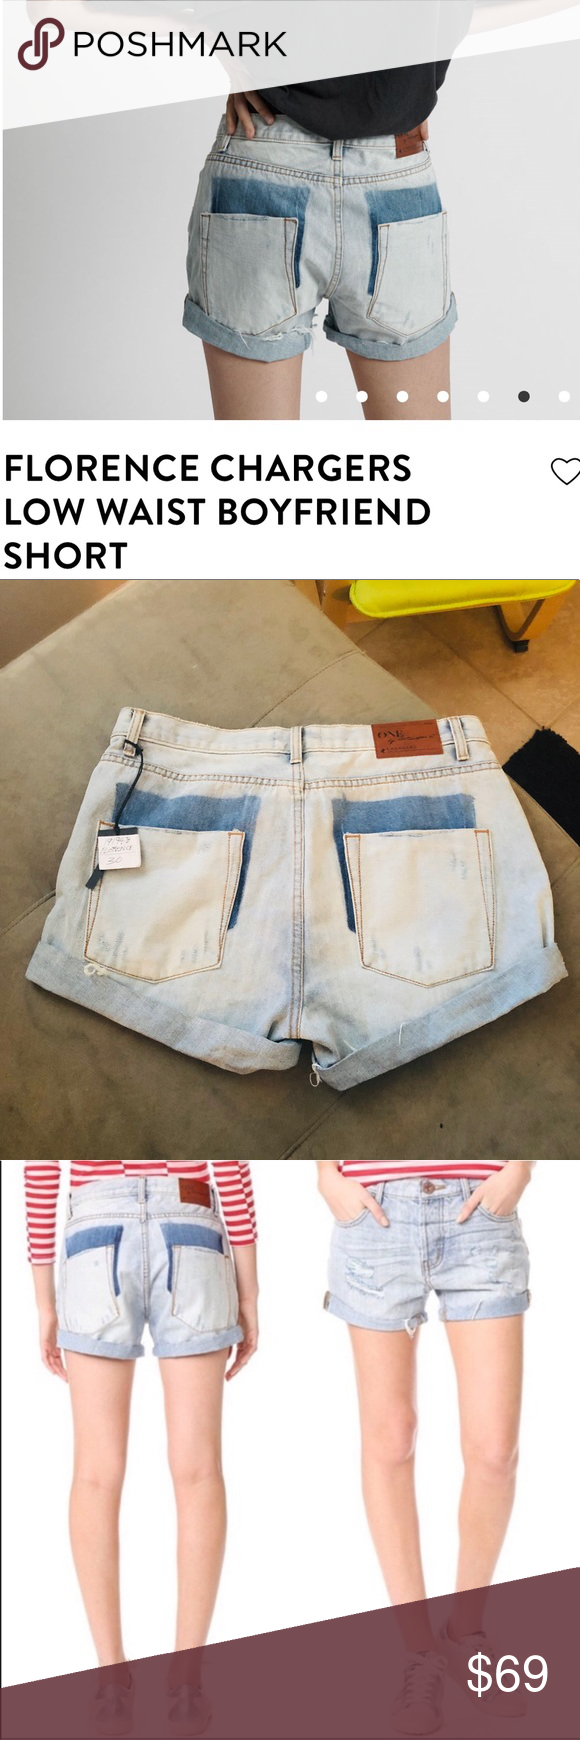 One Teaspoon Nwt Florence Chargers Denim Shorts 30 These Absolutely Adorable Brand New One Teaspoon Florence Chargers Short With Images Denim Shorts Fashion Fashion Trends